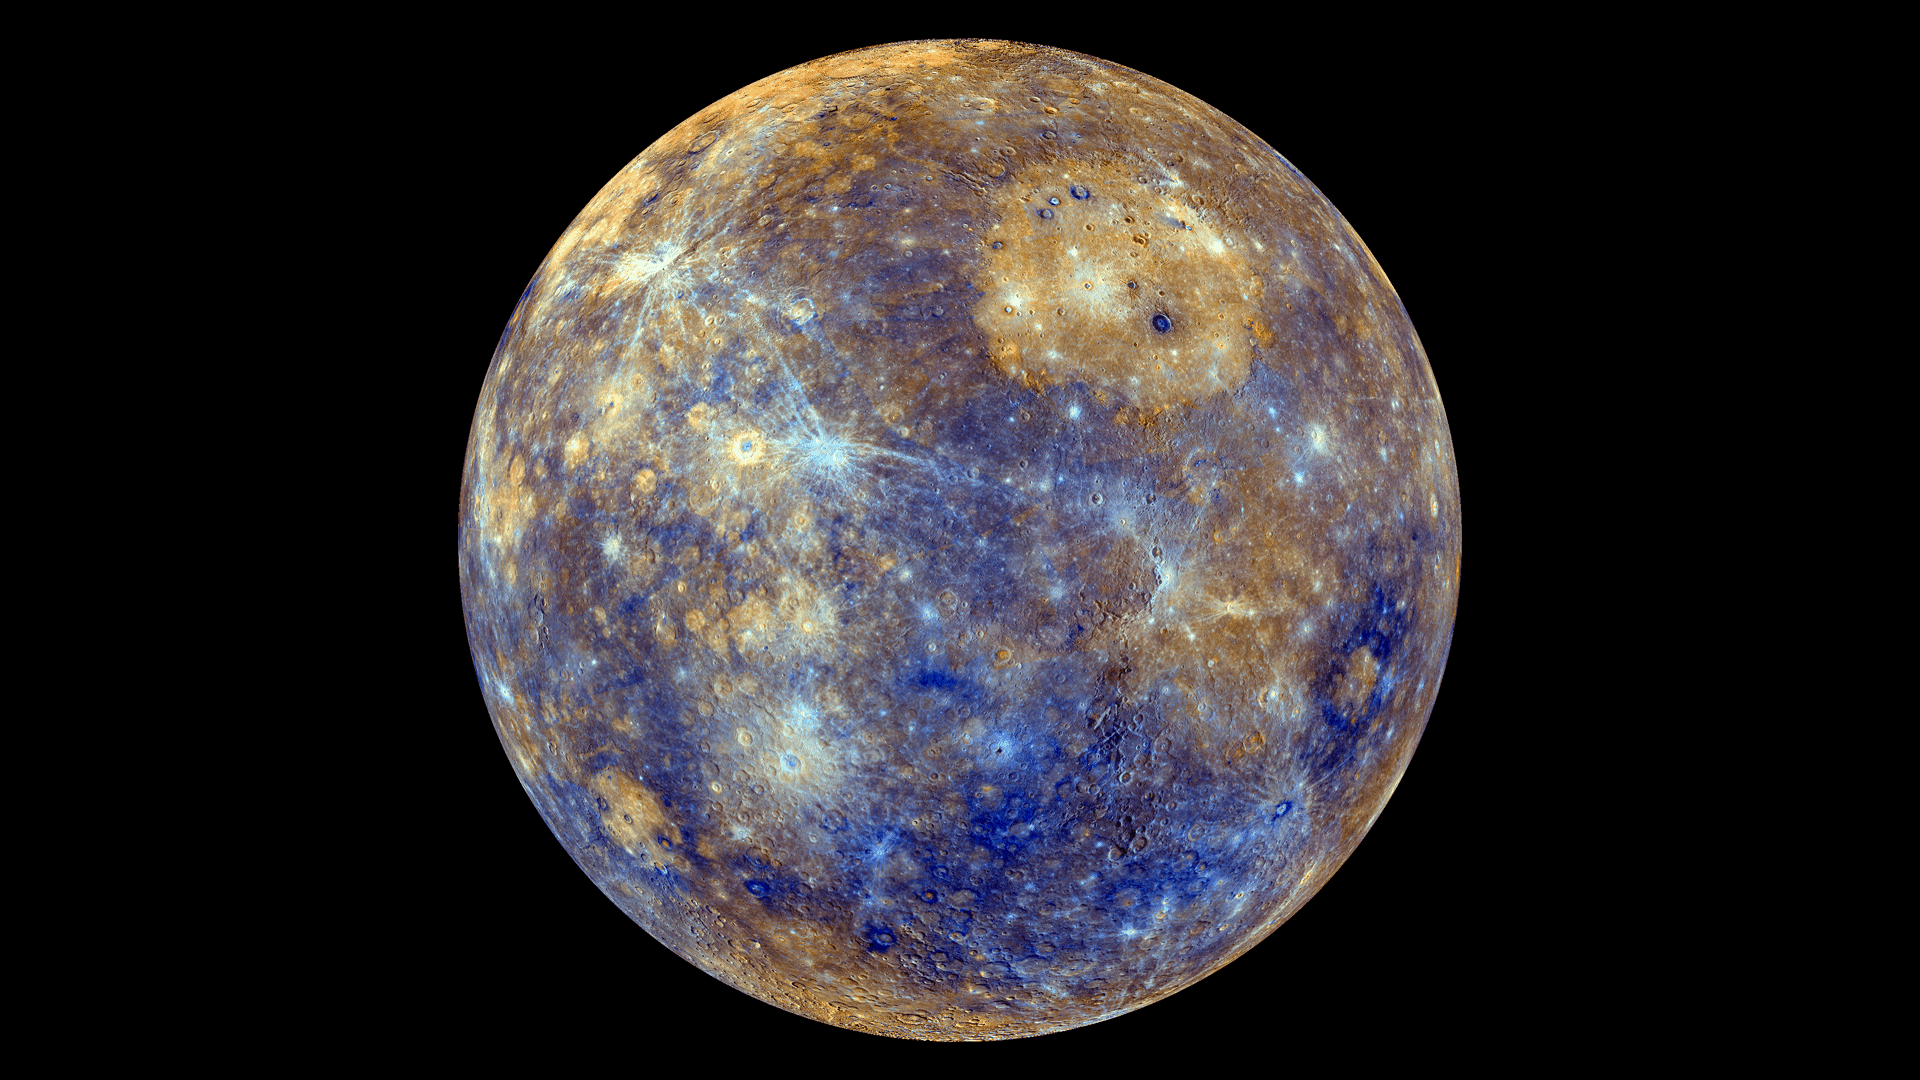 File:False Color View of Mercury.png.